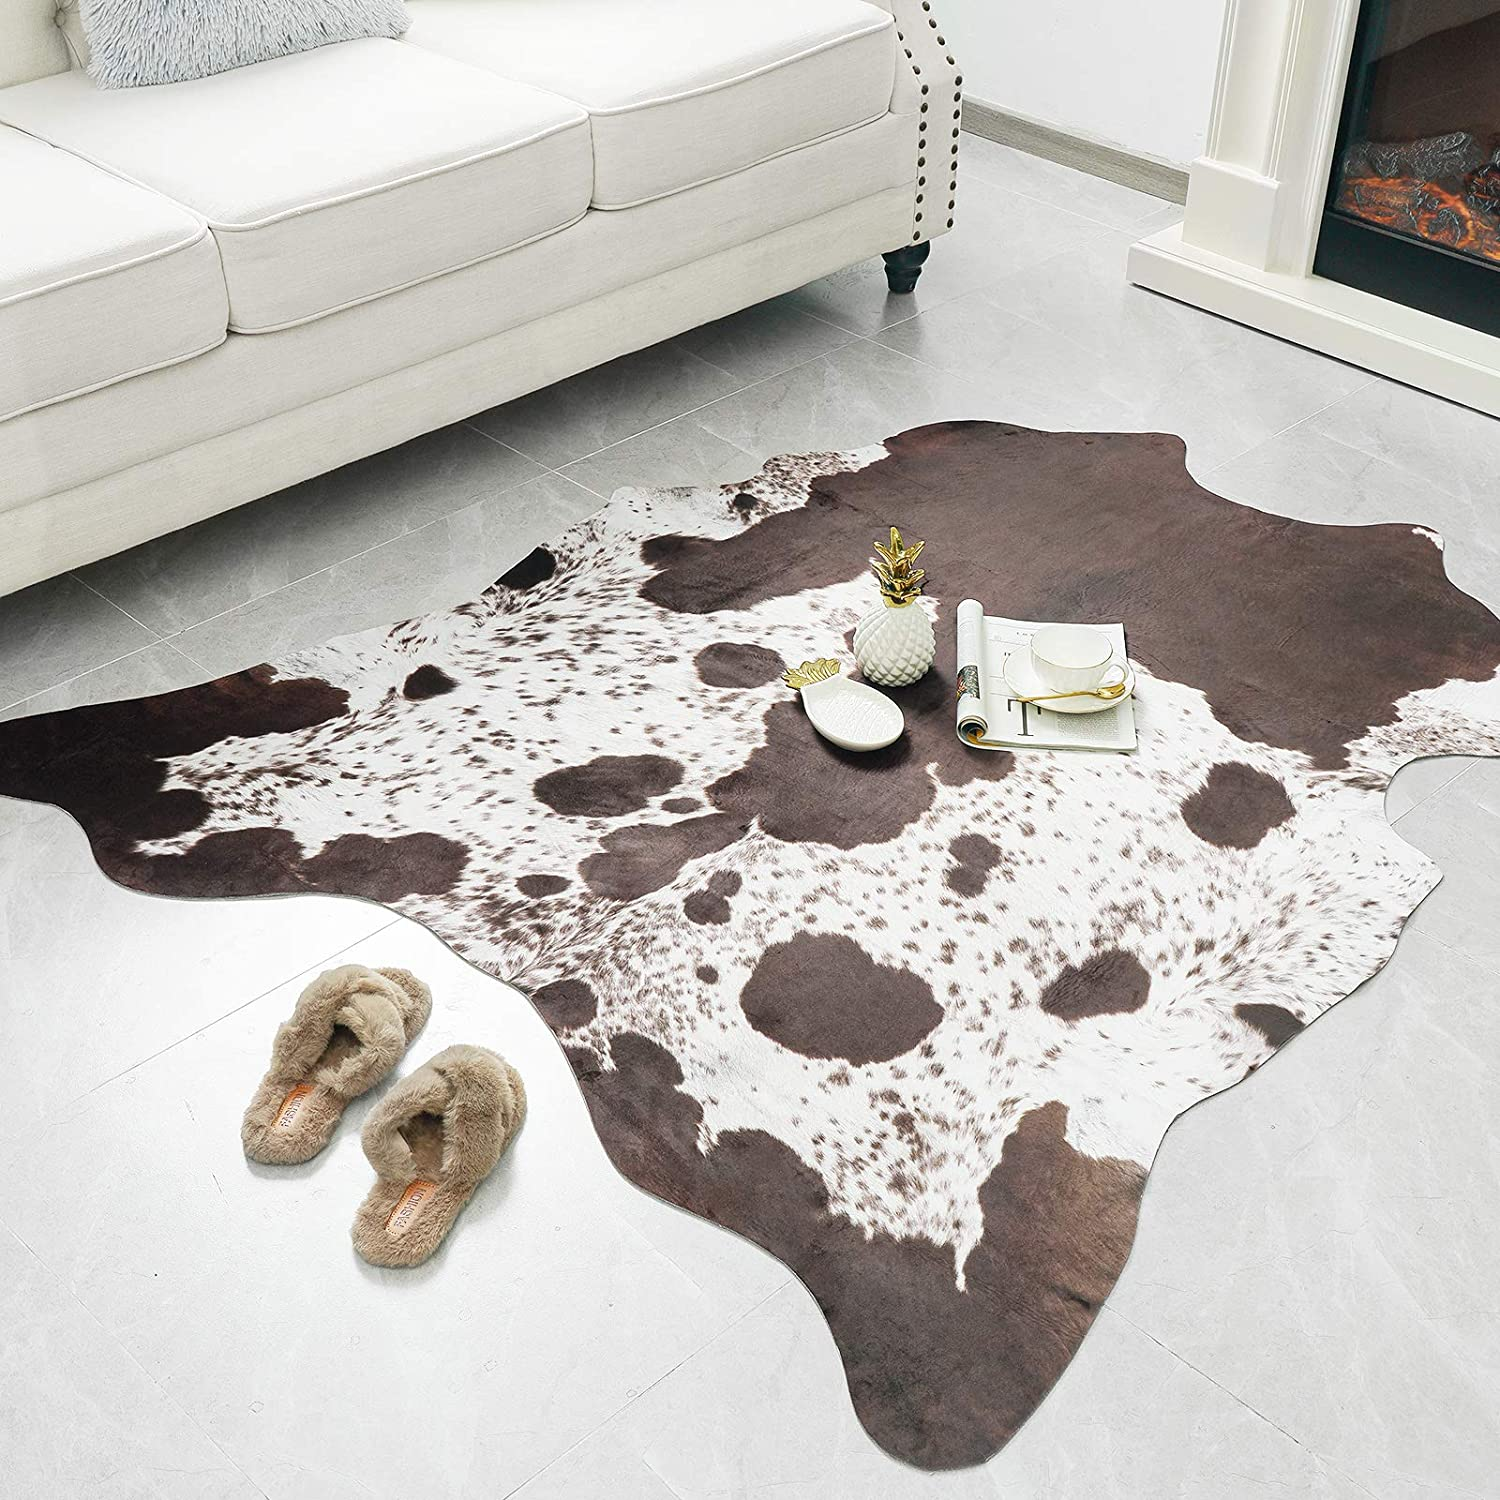 Rostyle Faux Cowhide Rug Cute Cow Hide Rug For Living Room Bedroom Western Home Decor Faux Fur Cow Print Rugs White And Brown 4 6 X 5 2 Feet Kitchen Dining